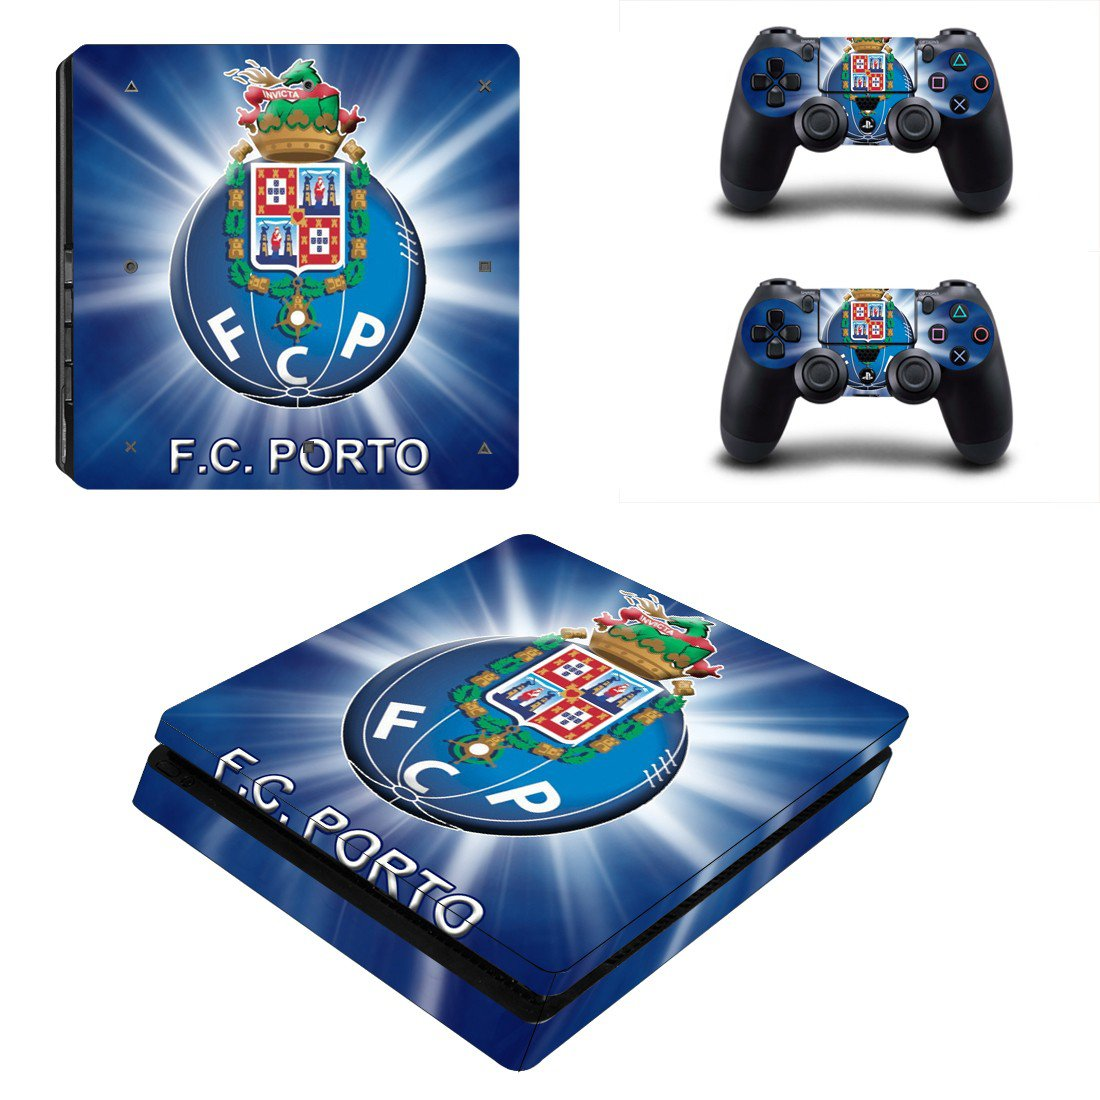 FC Porto decal skin sticker for PS4 Slim console and controllers